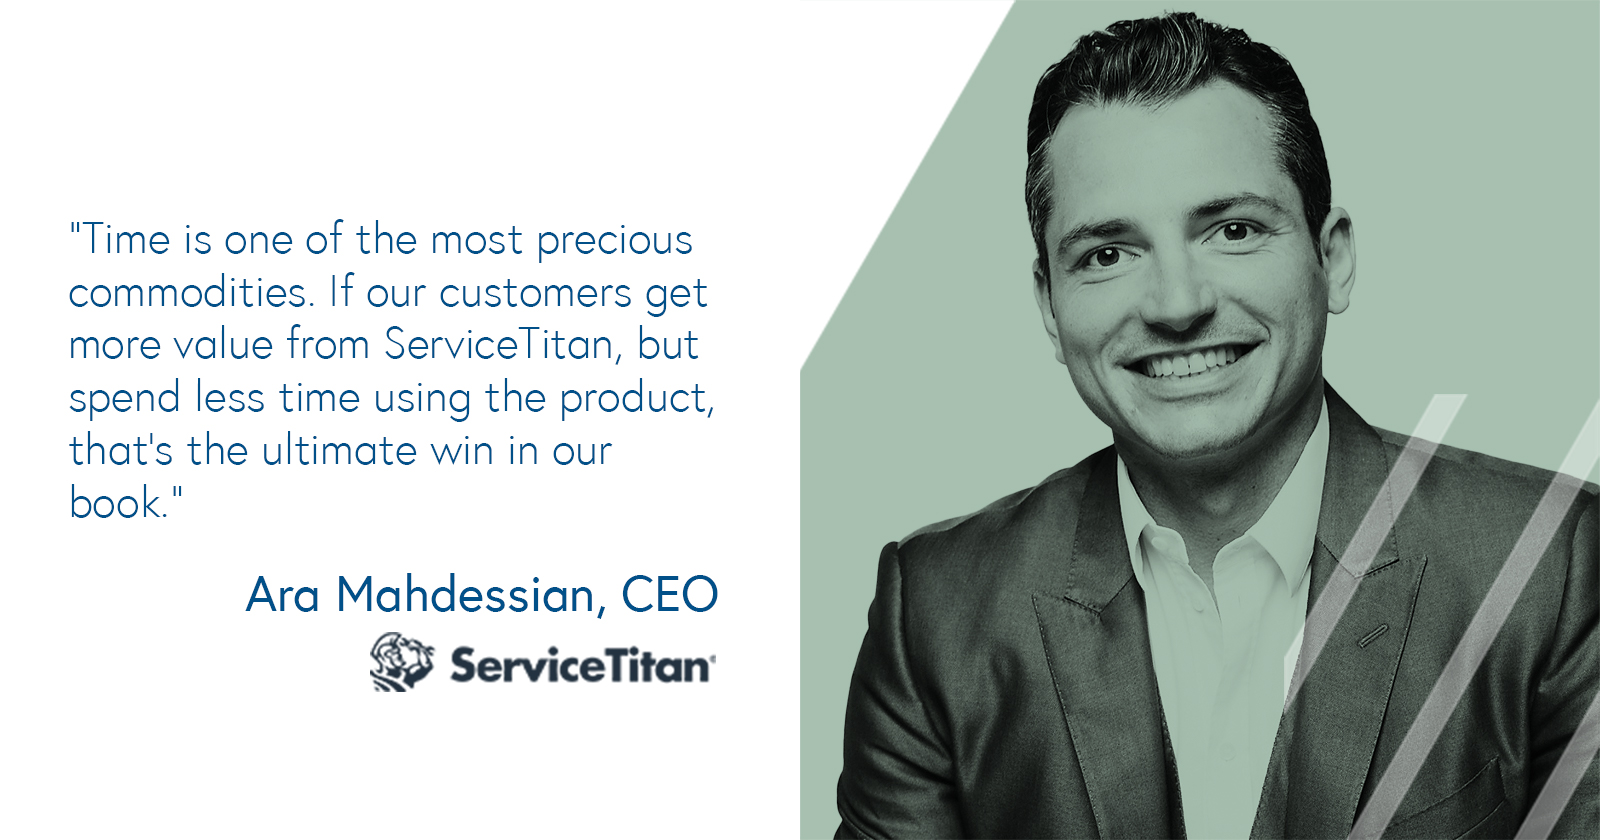 Ara Mahdessian, CEO of ServiceTitan on creating value for customers